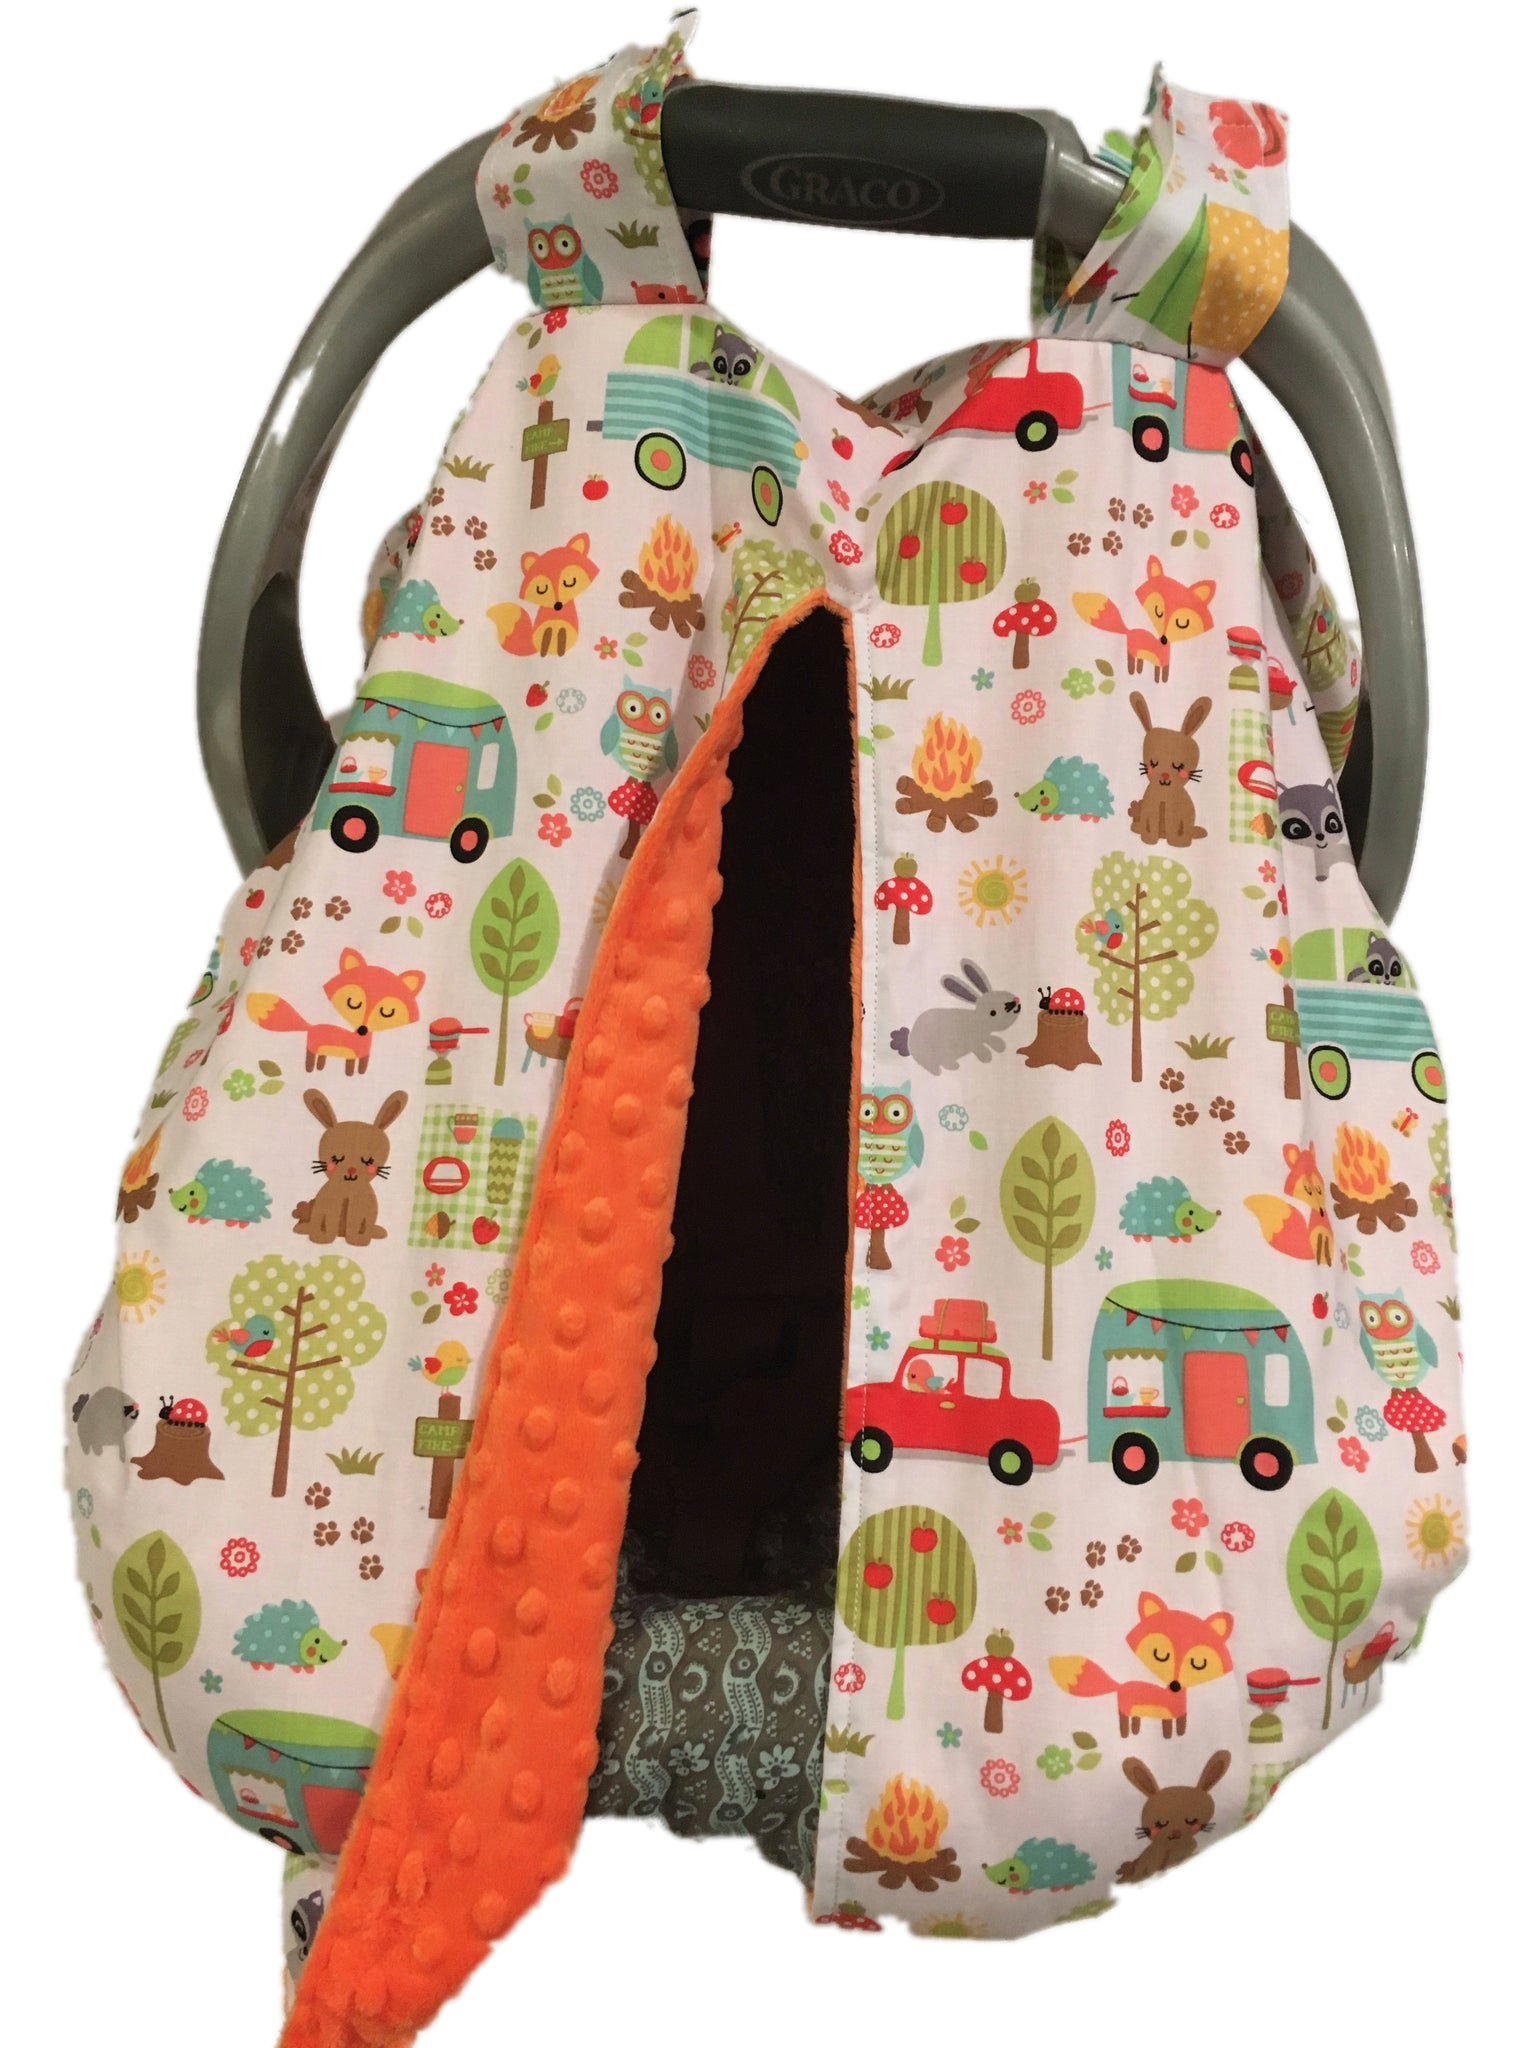 Camping Trip Car Seat Kover with Orange Minky Interior